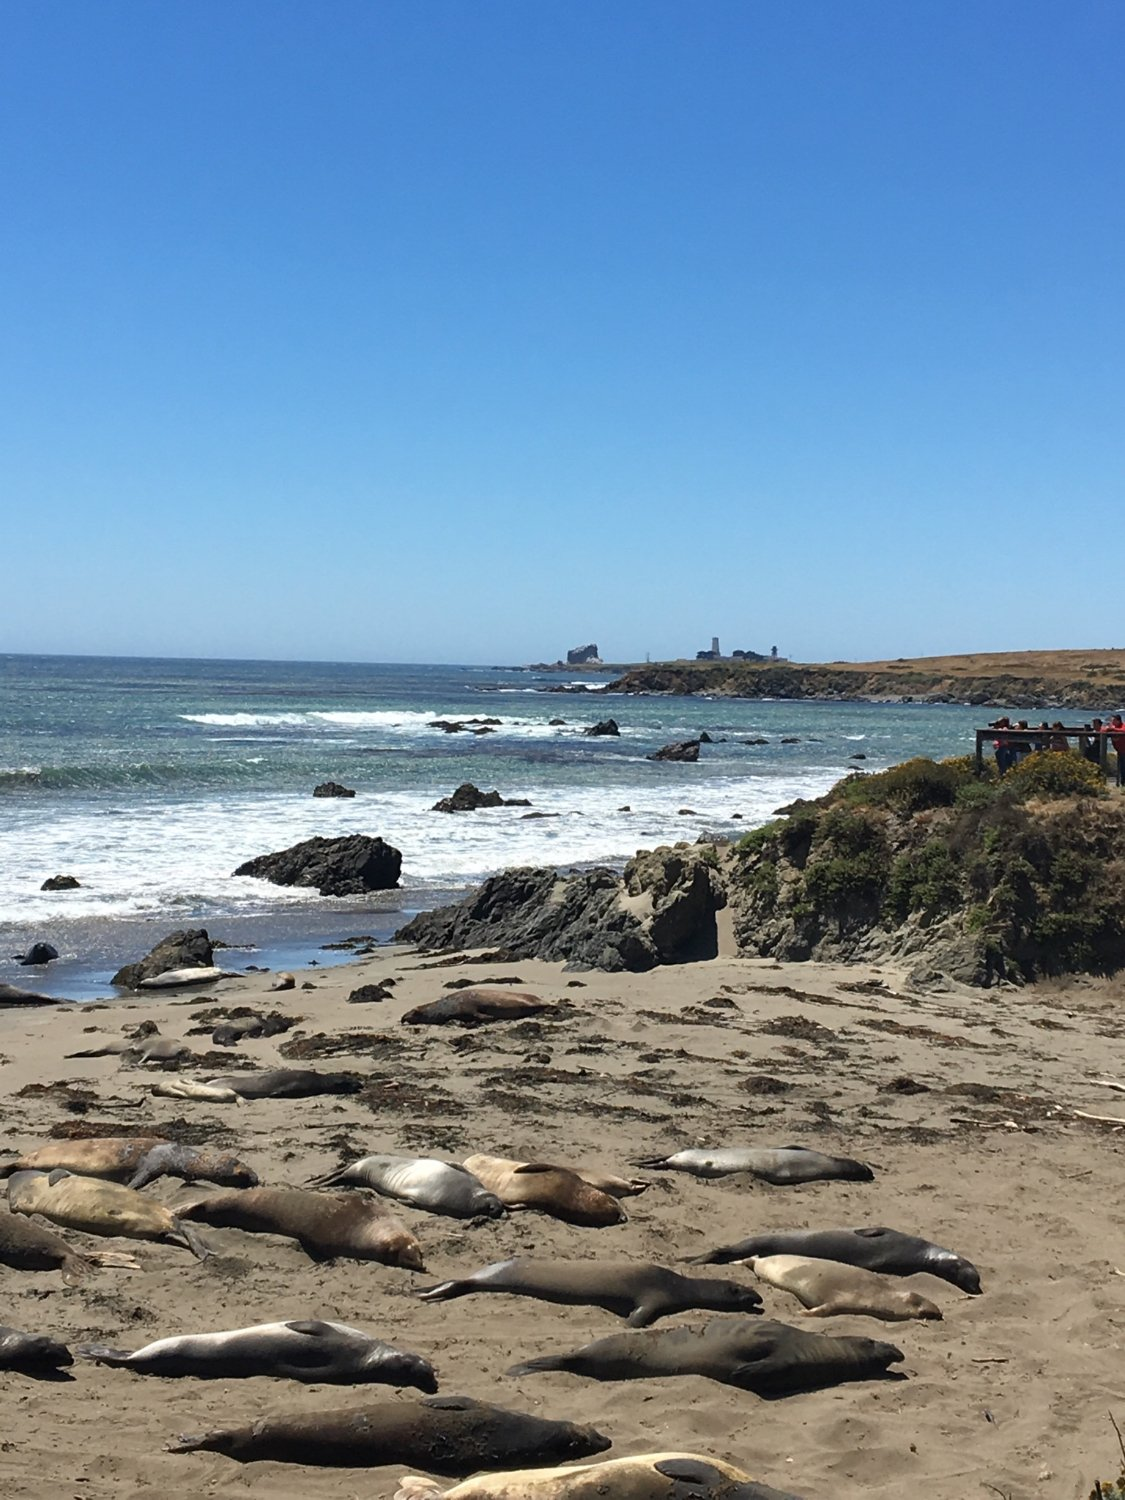 View of the sea lions